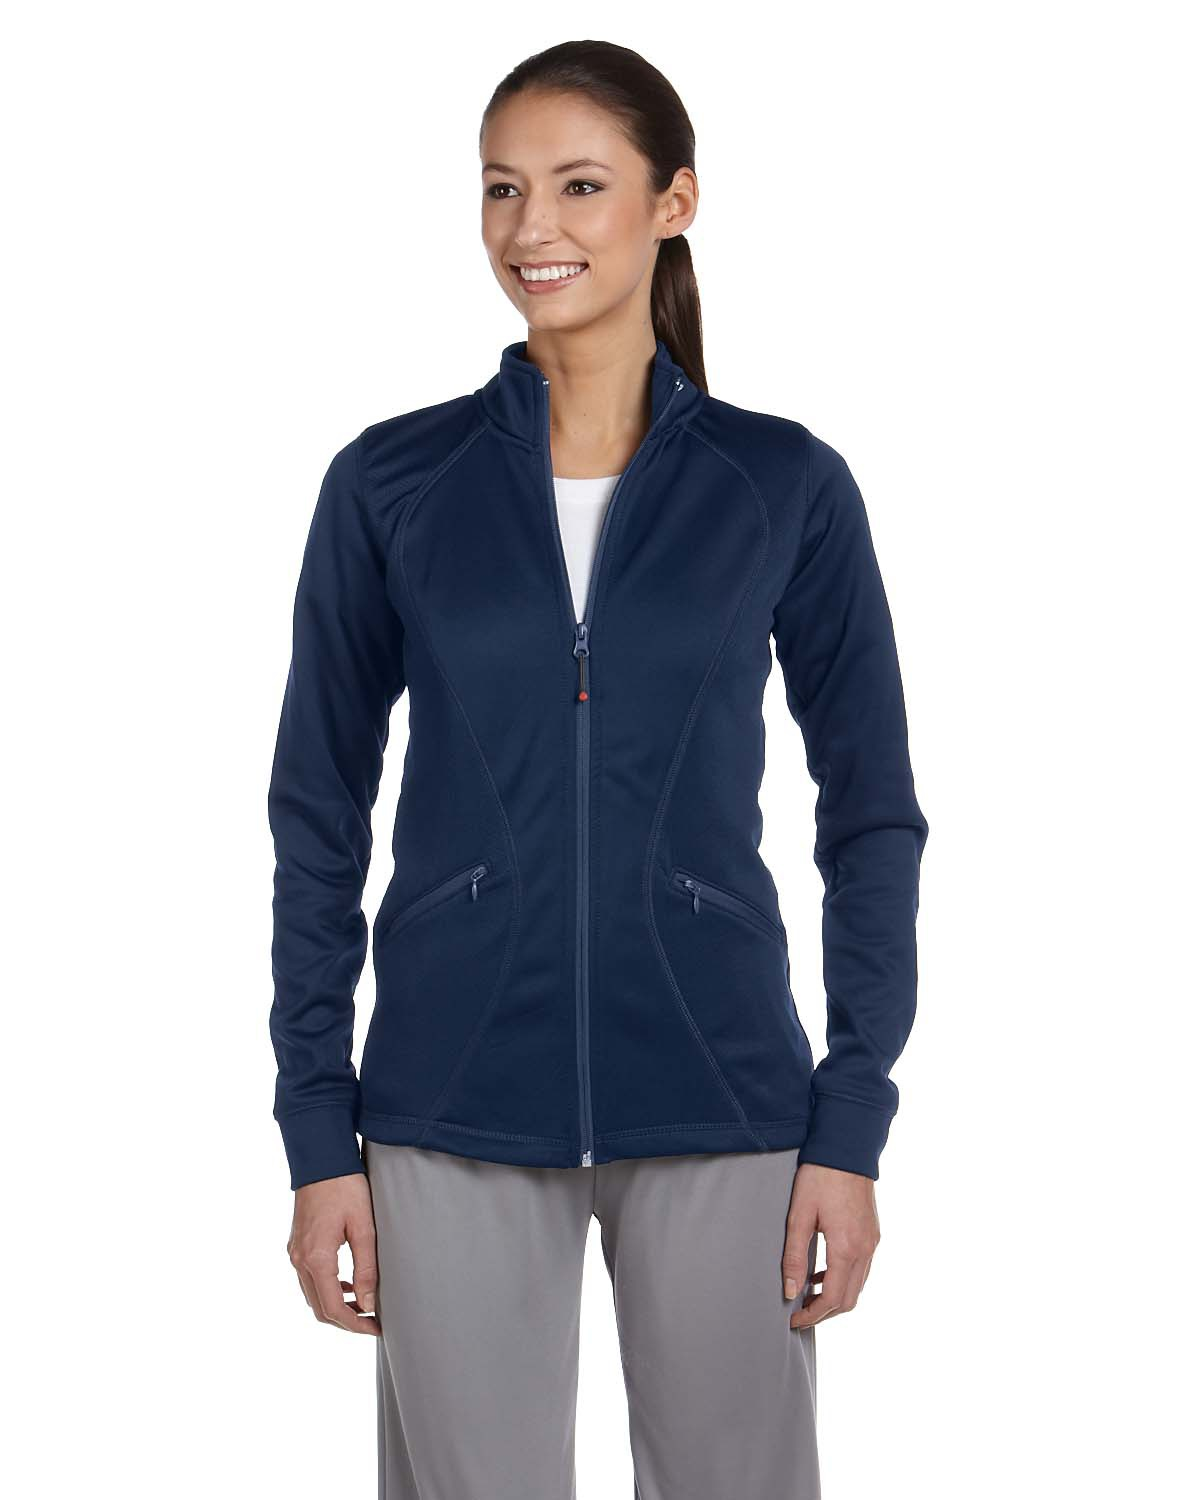 Russell Athletic FS7EFX - Ladies' Tech Fleece Full-Zip ...